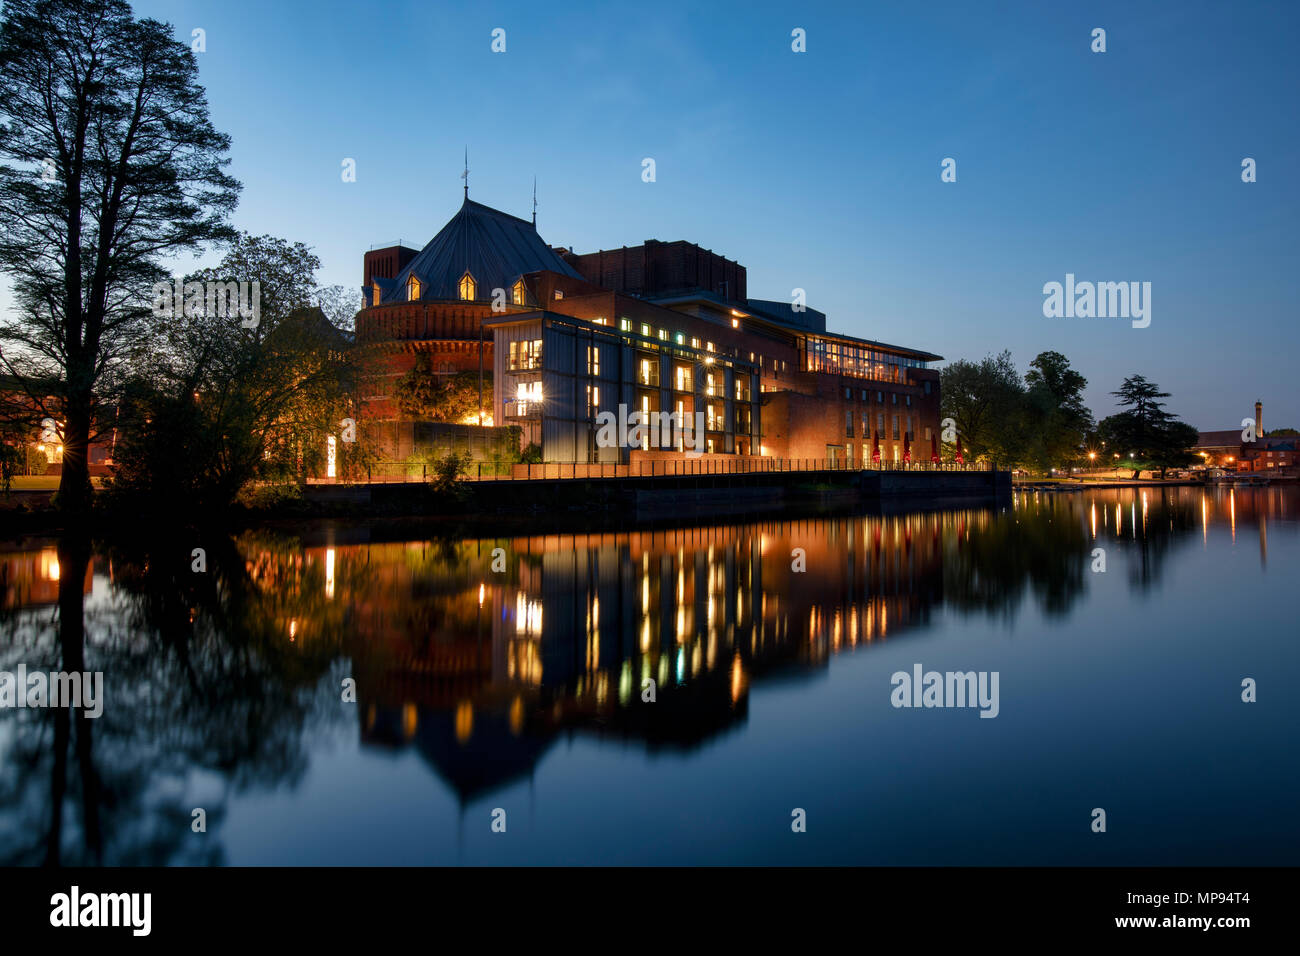 Royal Shakespeare Theatre reflecting in the river avon at dusk. Stratford Upon Avon, Warwickshire, England - Stock Image